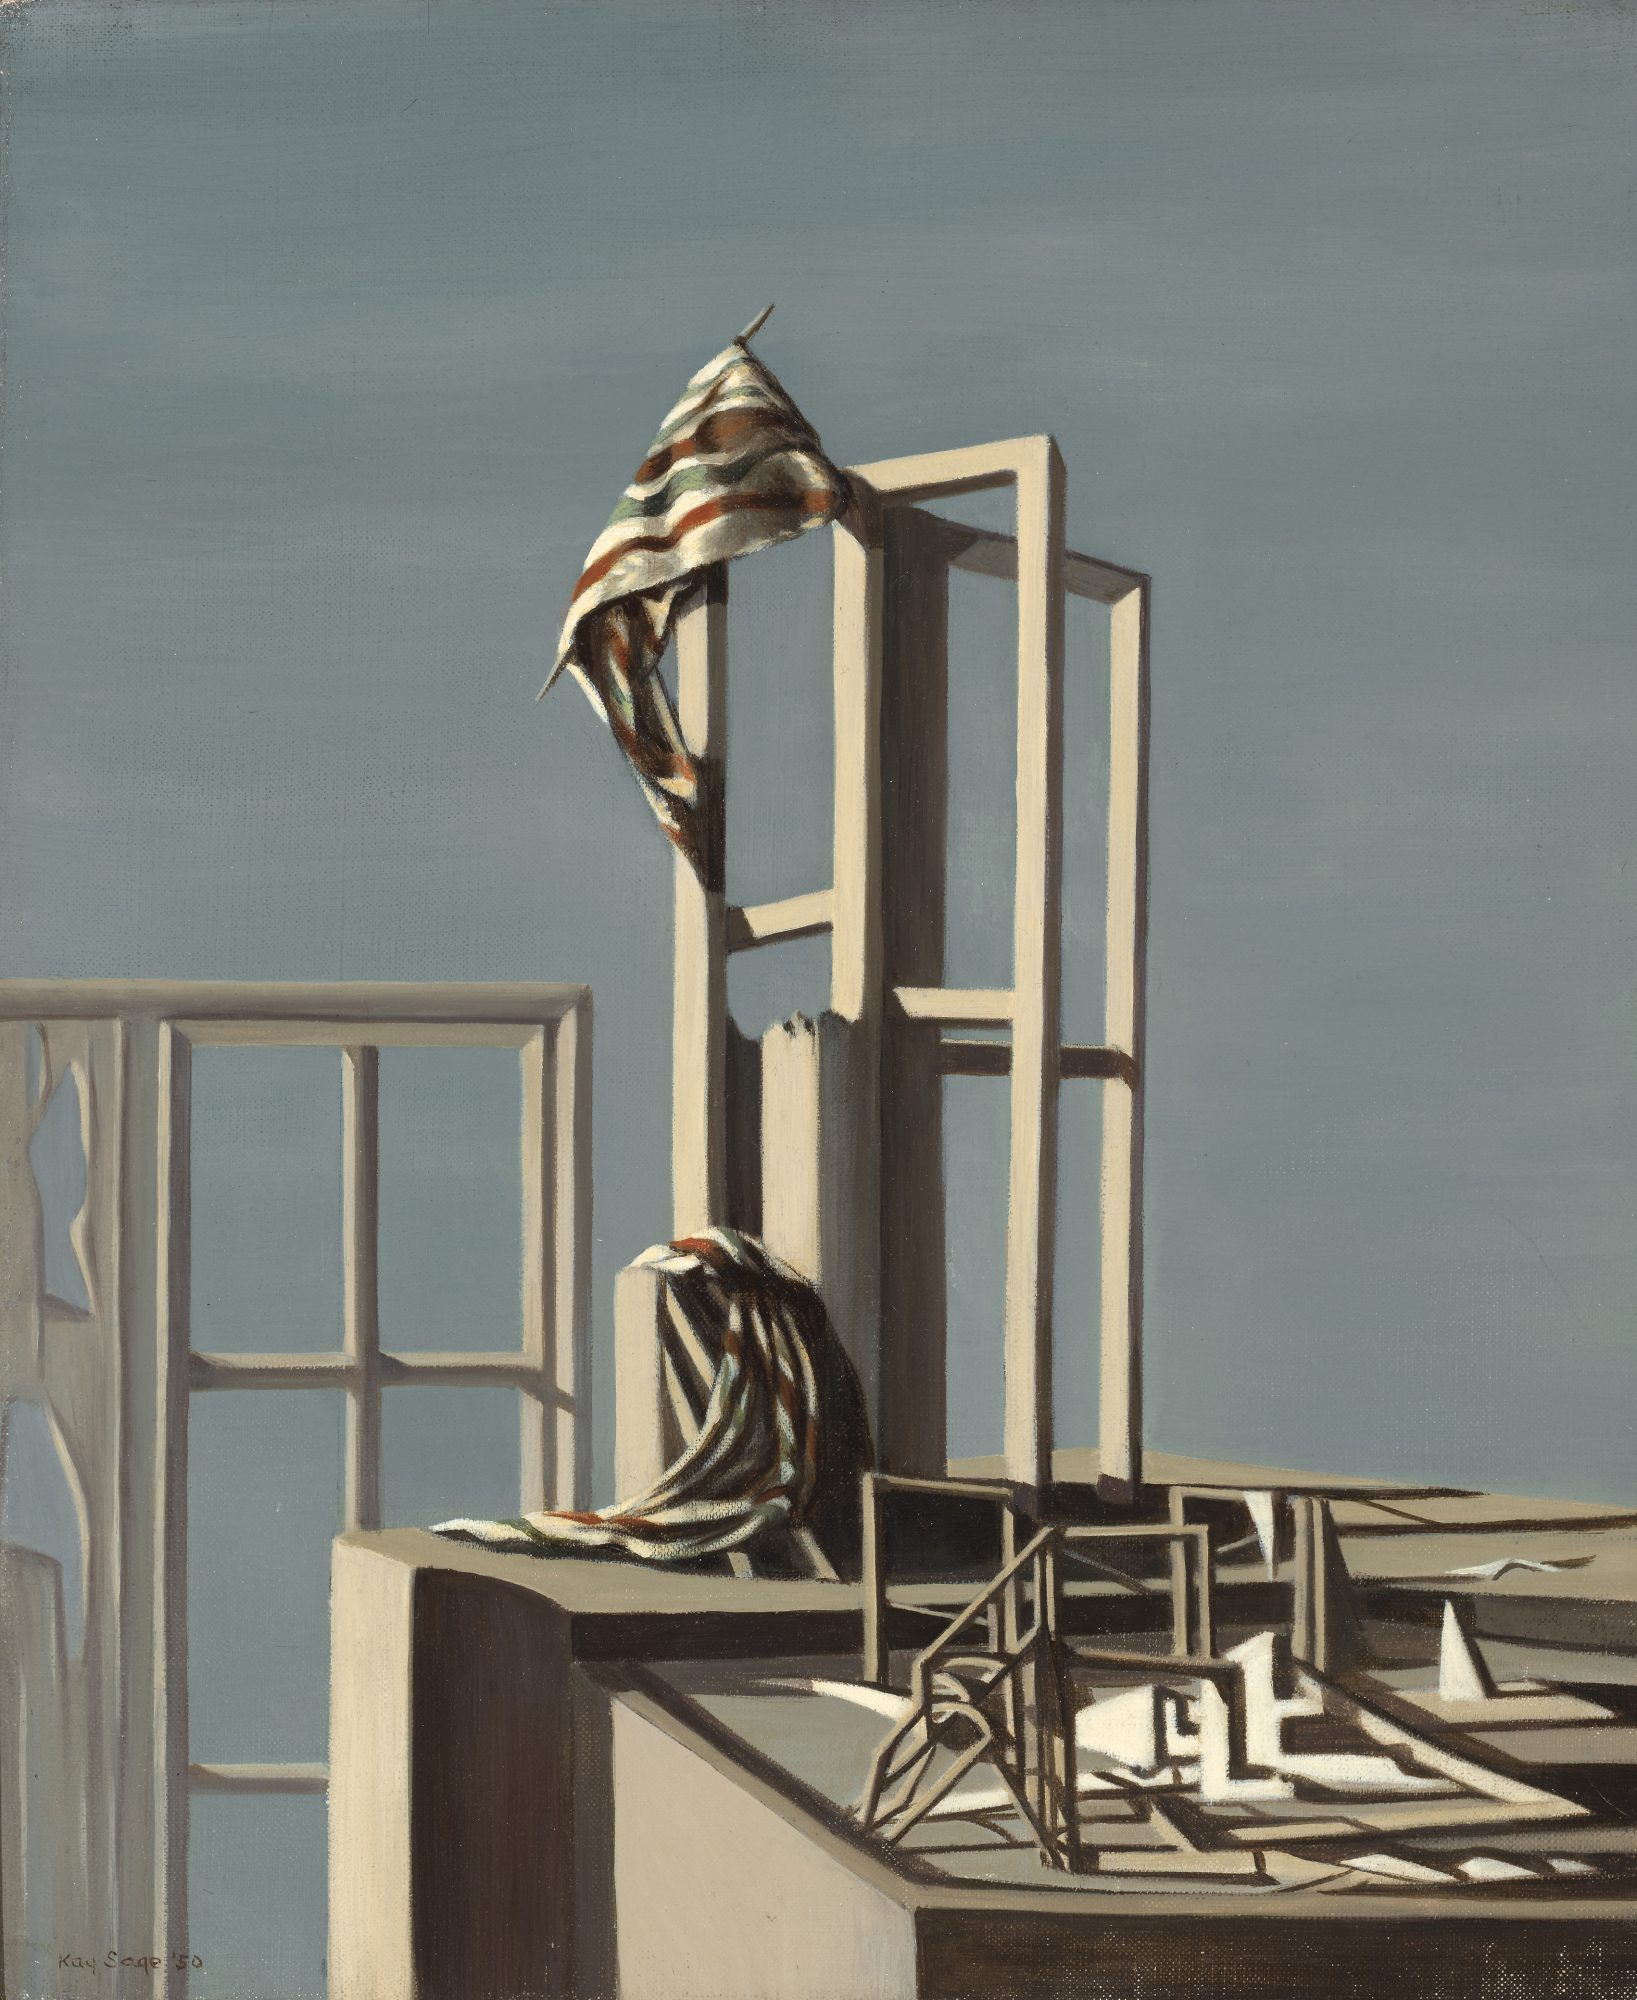 Kay Sage (American, 1898-1963), Page 49, 1950. Oil on canvas, 18 1/8 x 15 1/8 in. Bequest of Kay Sage Tanguy. 64.23